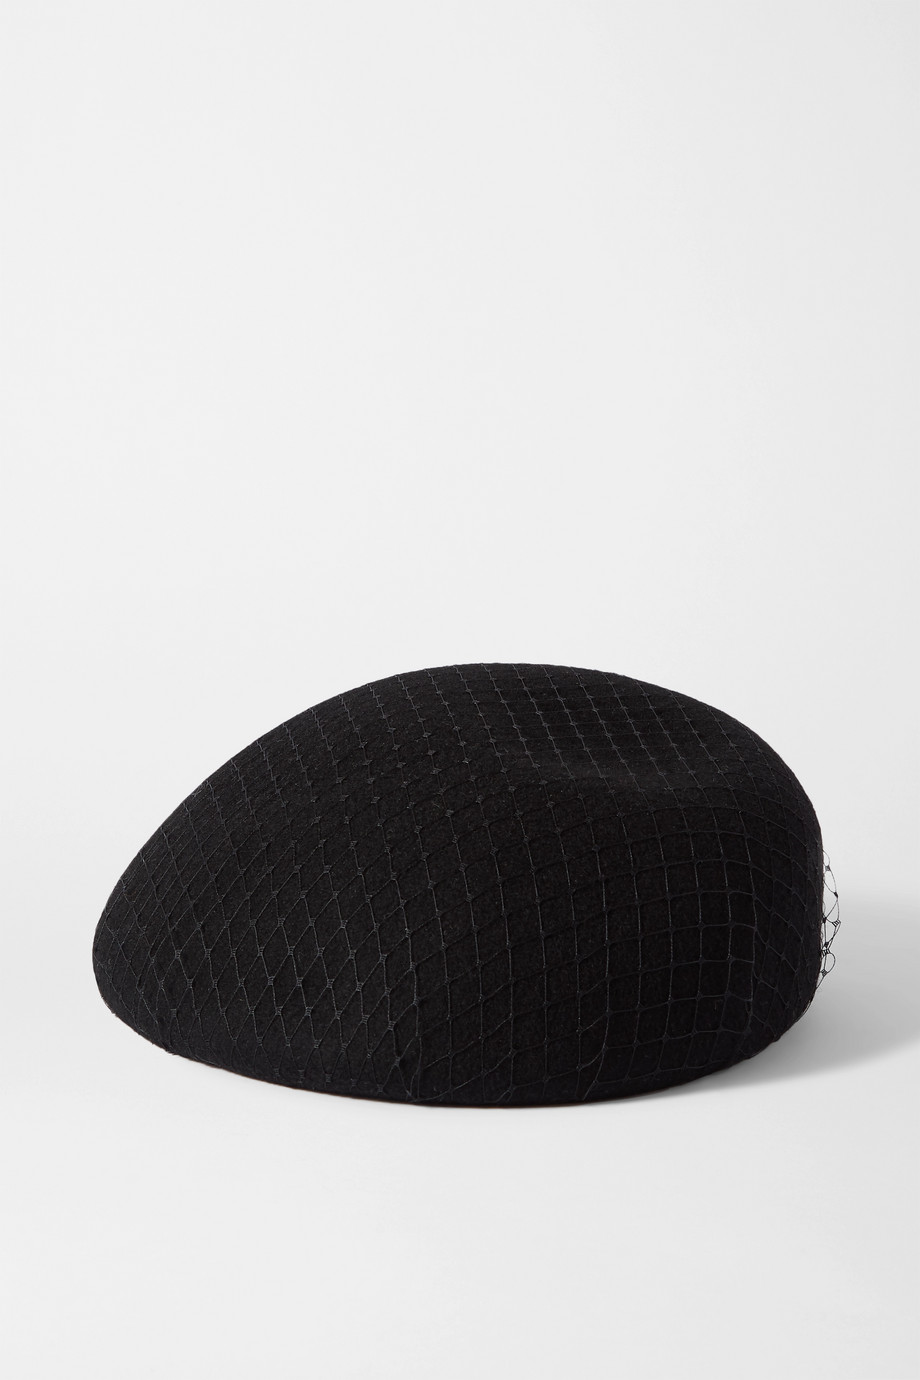 EUGENIA KIM Coco wool-felt and mesh beret